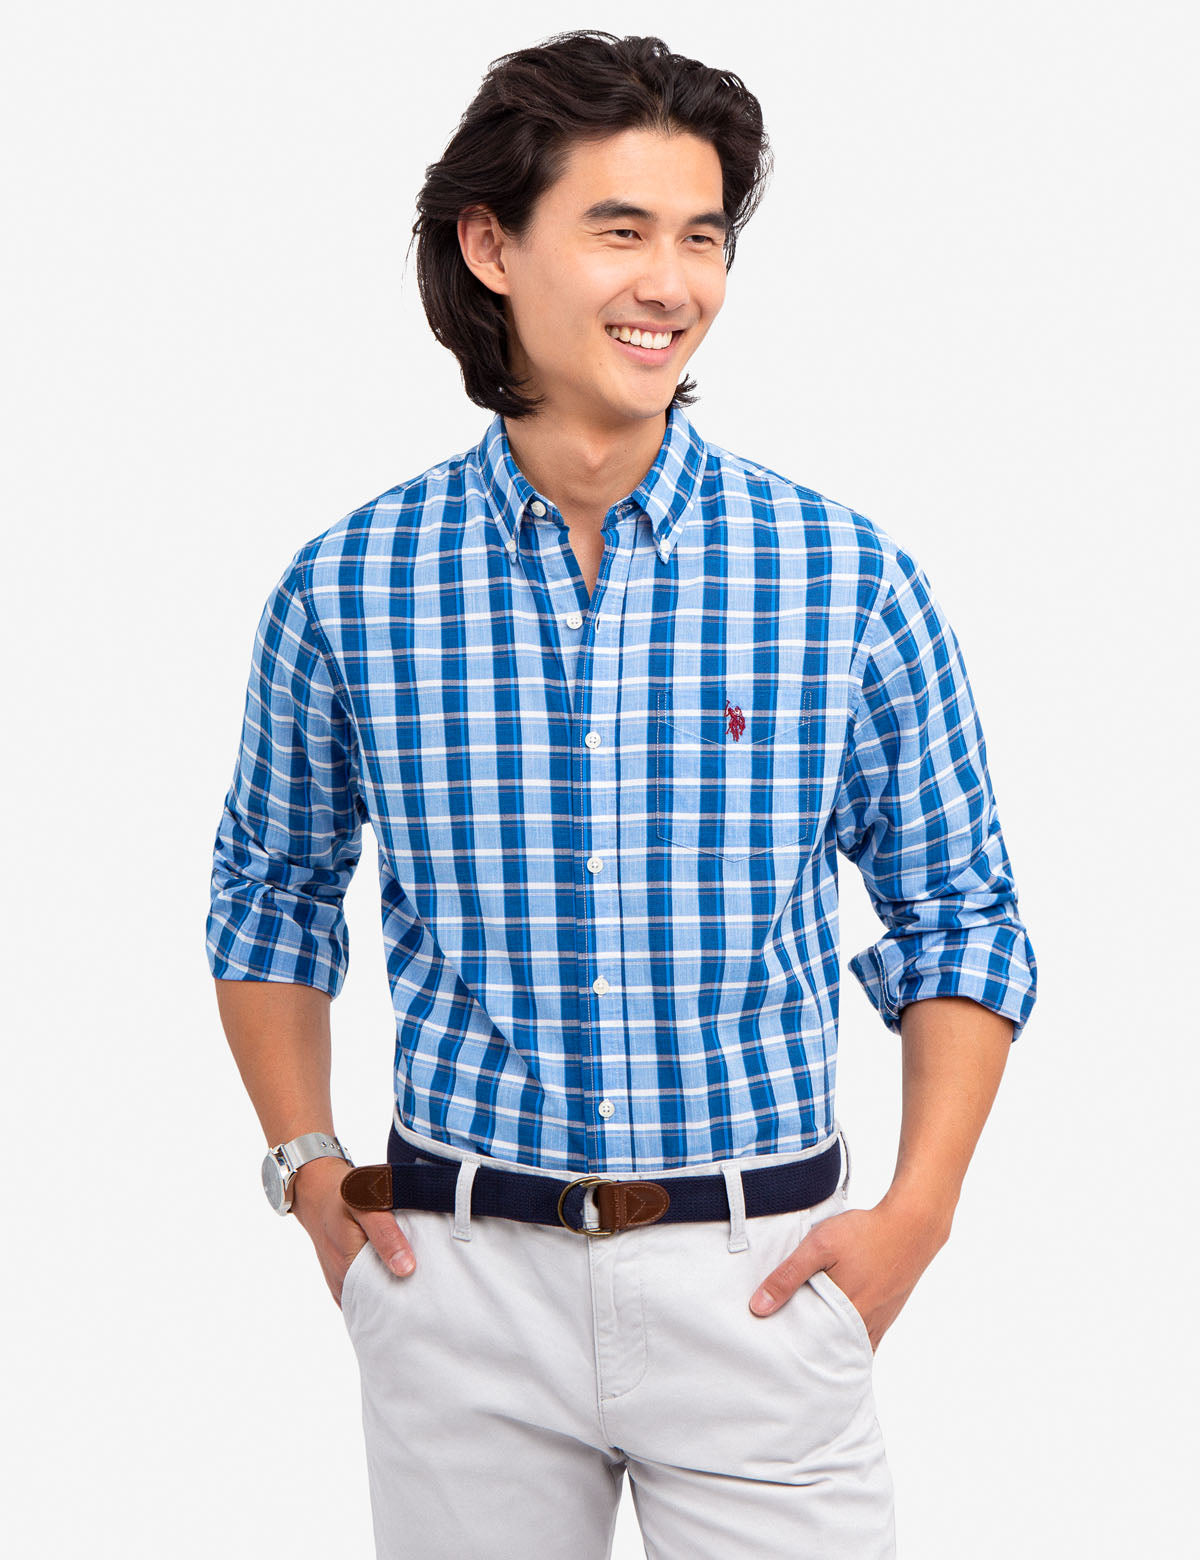 MEDIUM PLAID POPLIN SHIRT - U.S. Polo Assn.